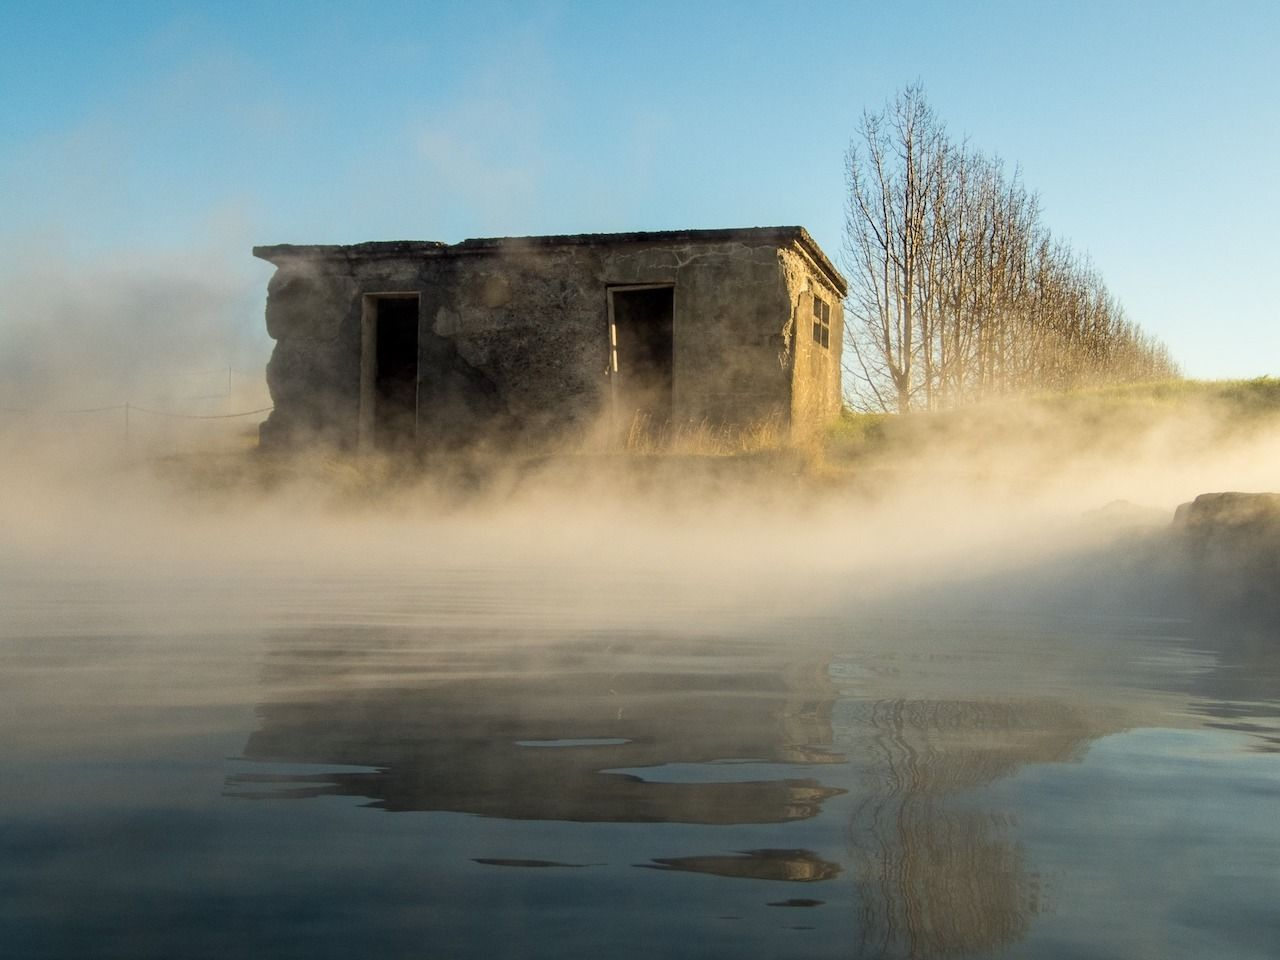 photo of the oldest pool in Iceland, Gamla Laugin, villages in Iceland